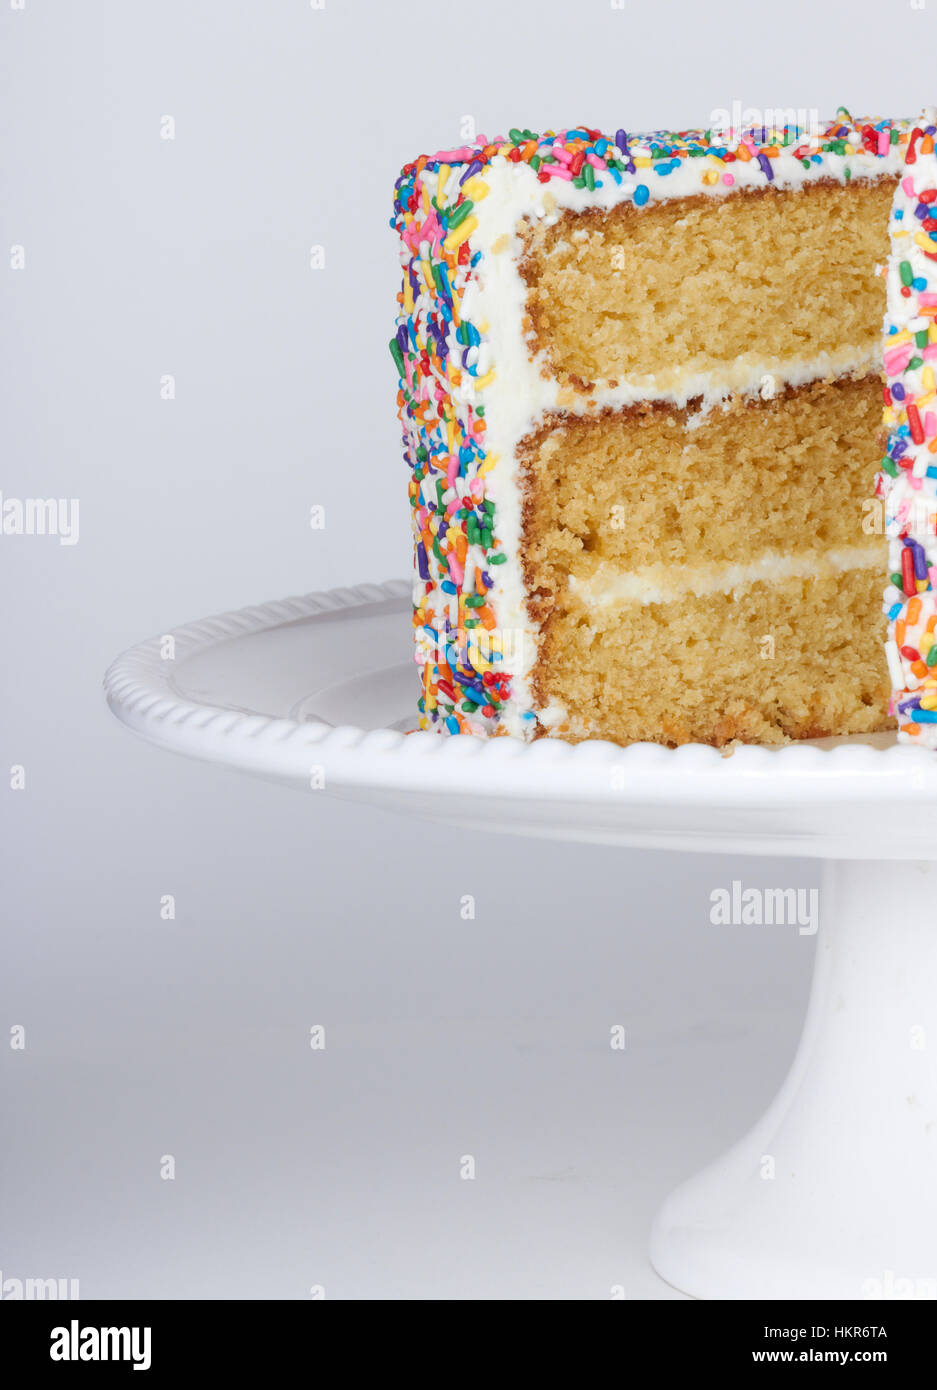 White Cake On A Cake Stand Covered In White Frosting And Rainbow